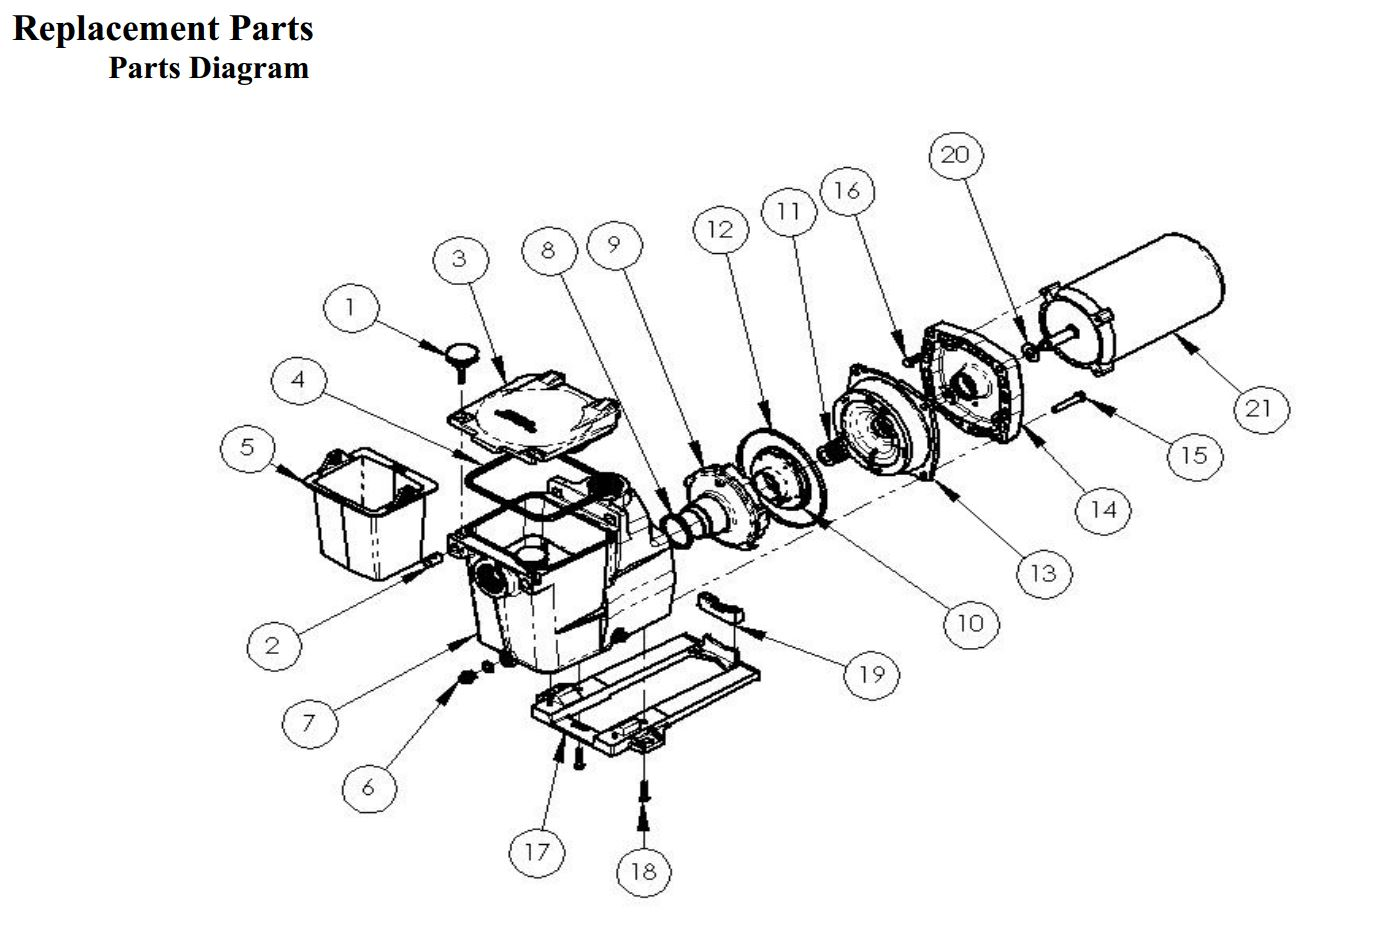 Hayward_Pump_ReplacementParts_WireDiagram._V359521762_ amazon com hayward sp2610x15 super pump 1 5 hp max rated single Hayward Pool Pumps 1.5 HP at crackthecode.co